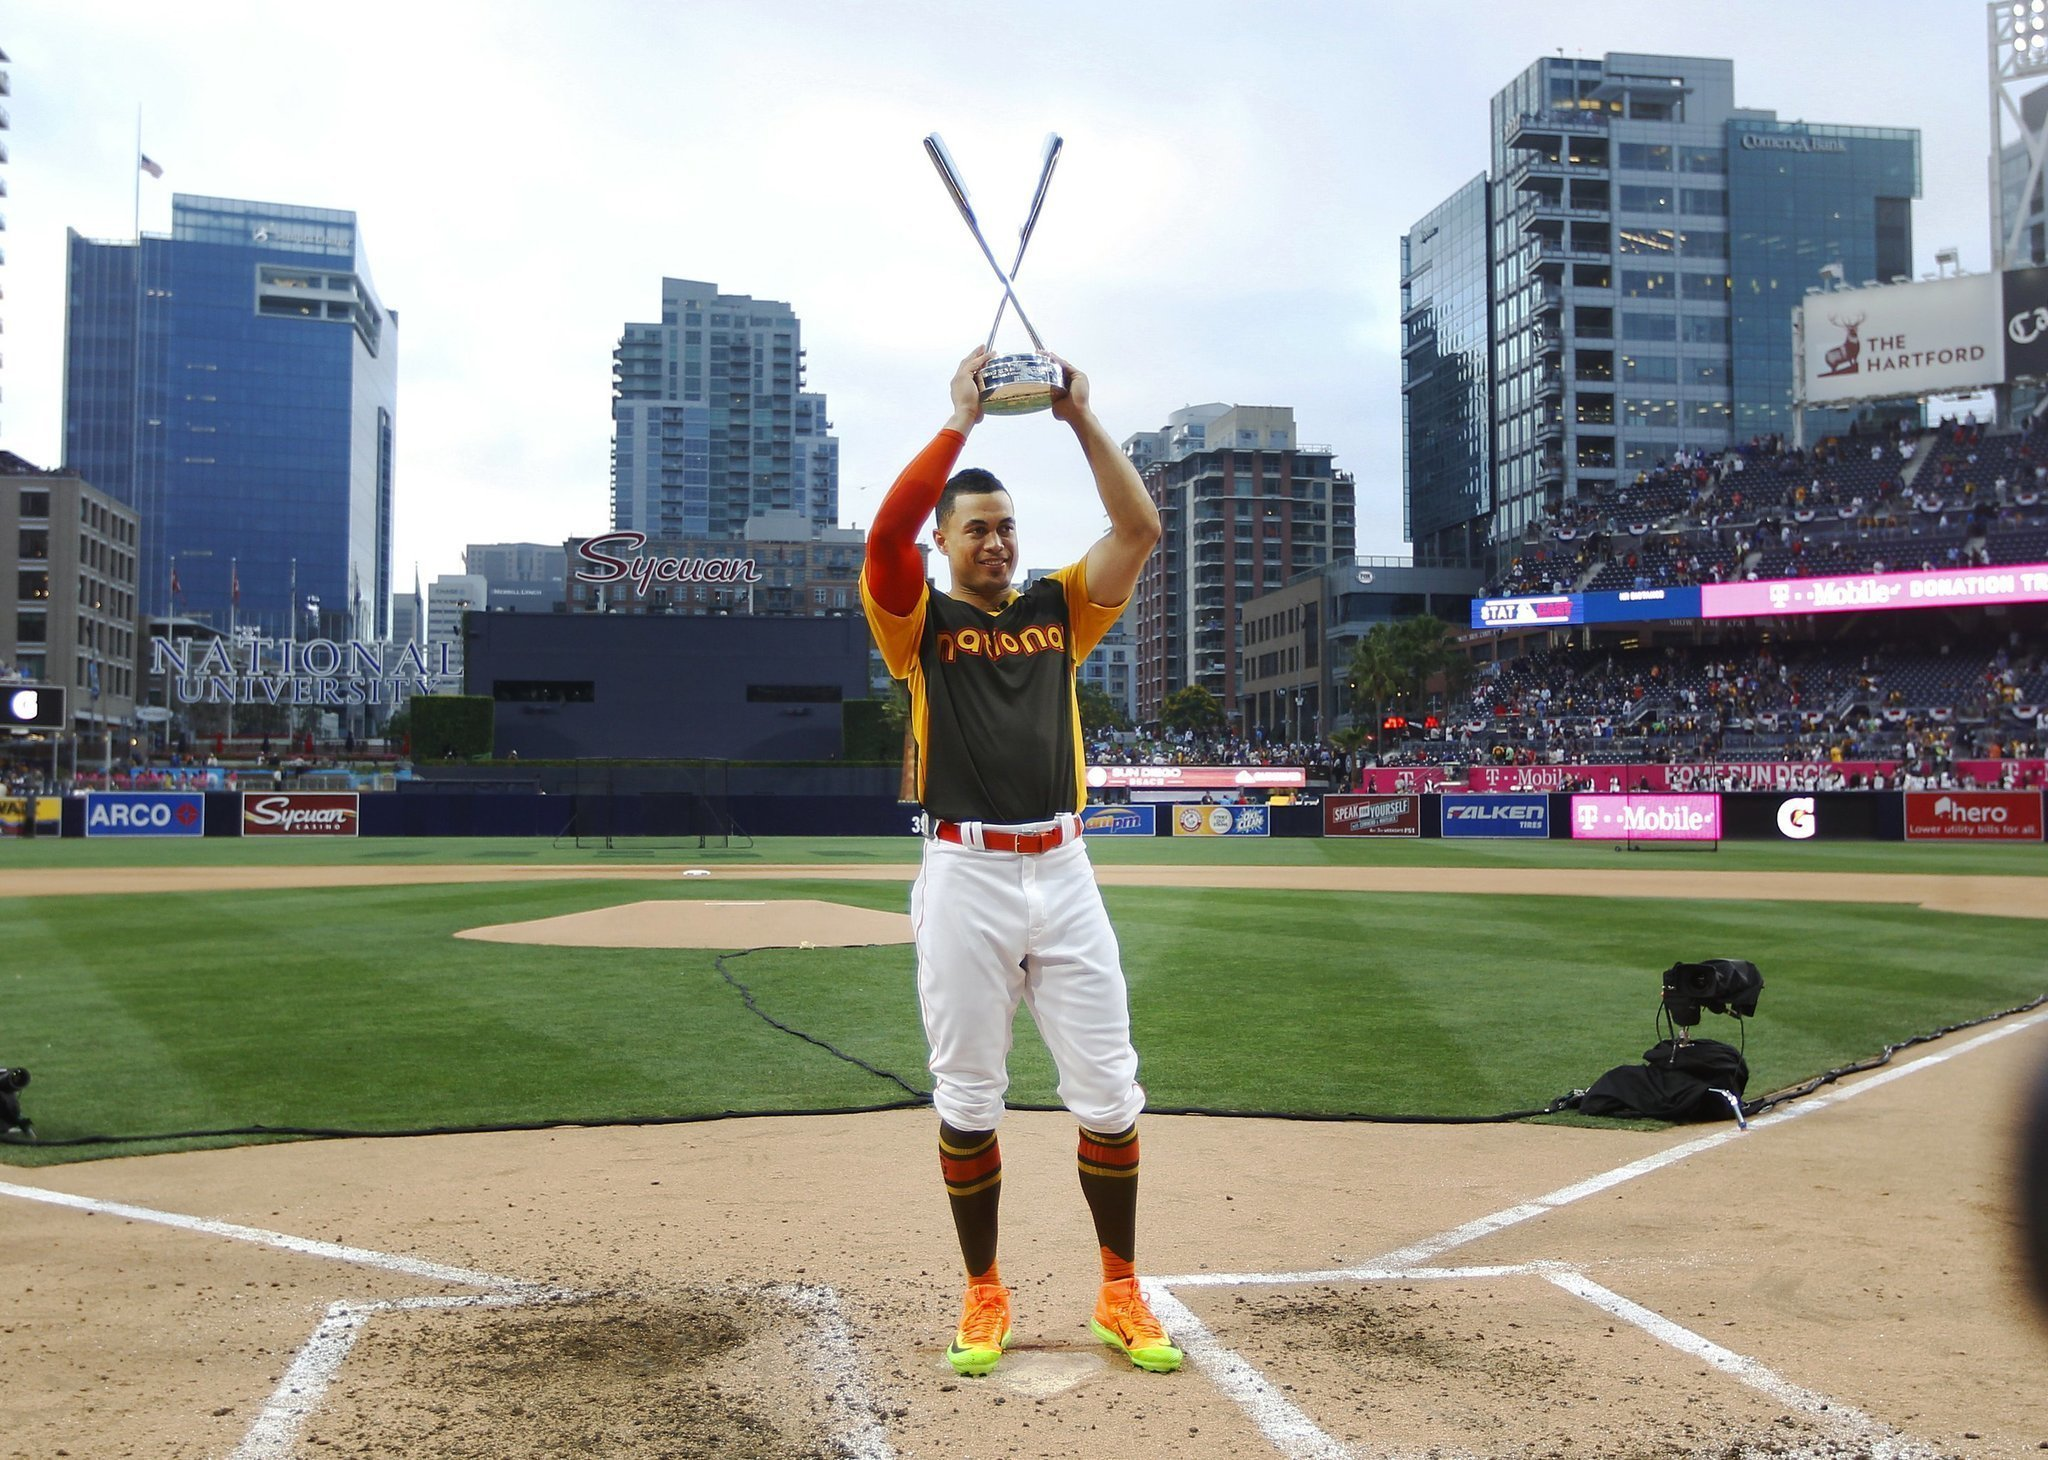 Giancarlo stanton hits a home run out of dodger stadium pictures.